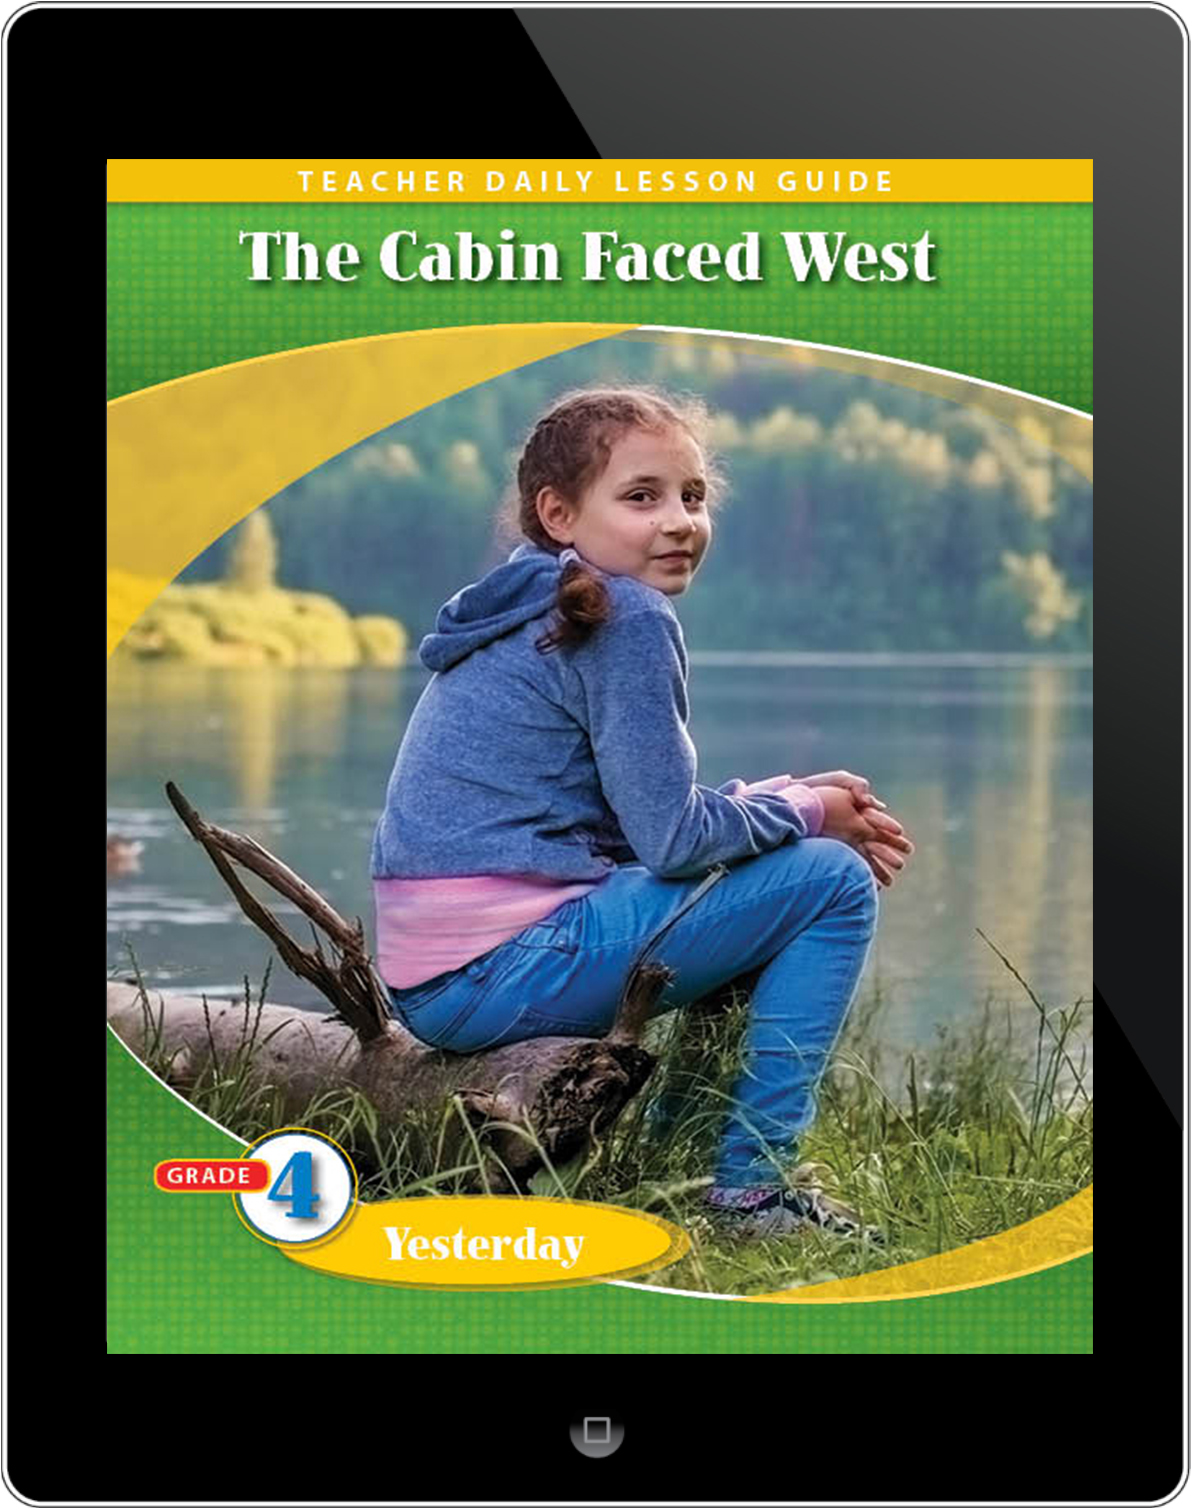 Pathways2.0 Grade 4 Yesterday Unit: The Cabin Faced West Daily Lesson Guide 5 Year License